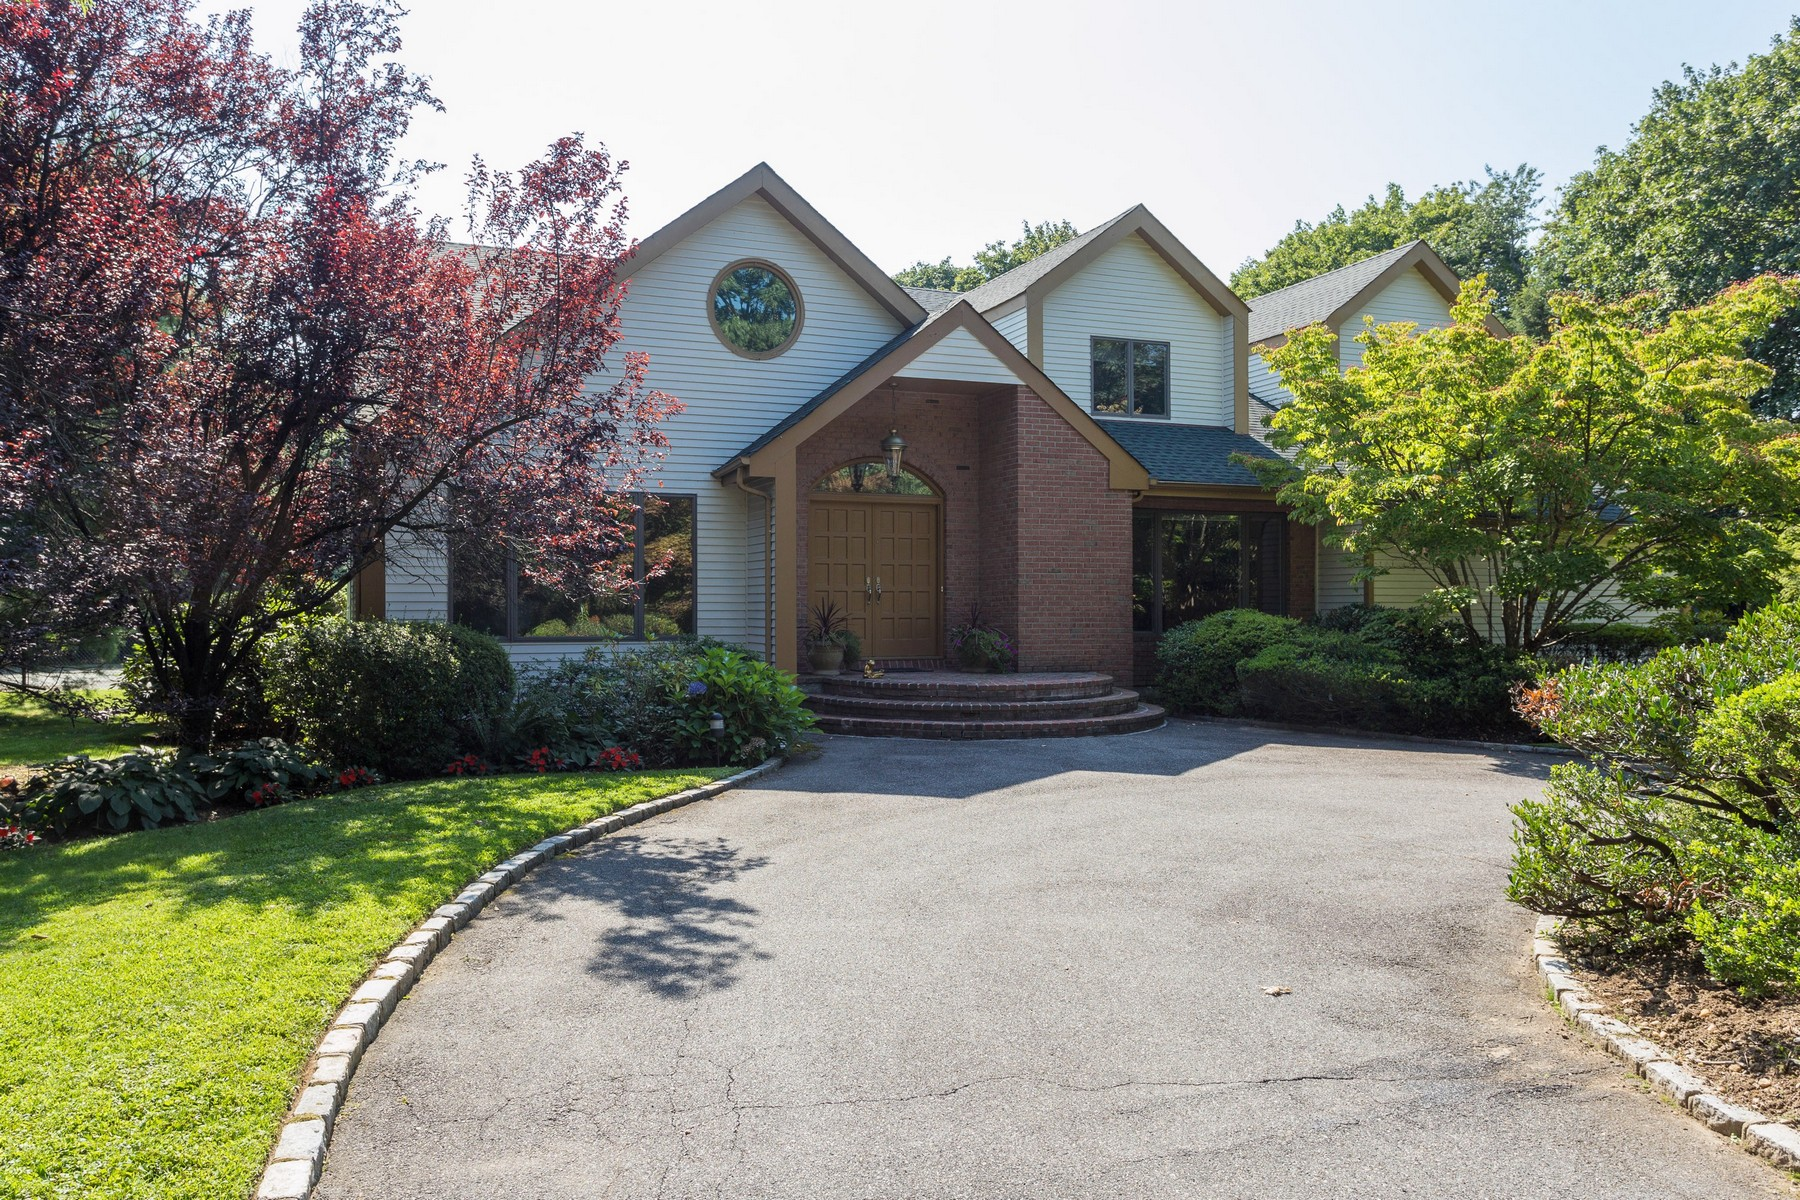 Single Family Home for Sale at Colonial 192 Old Westbury Rd Old Westbury, New York, 11568 United States